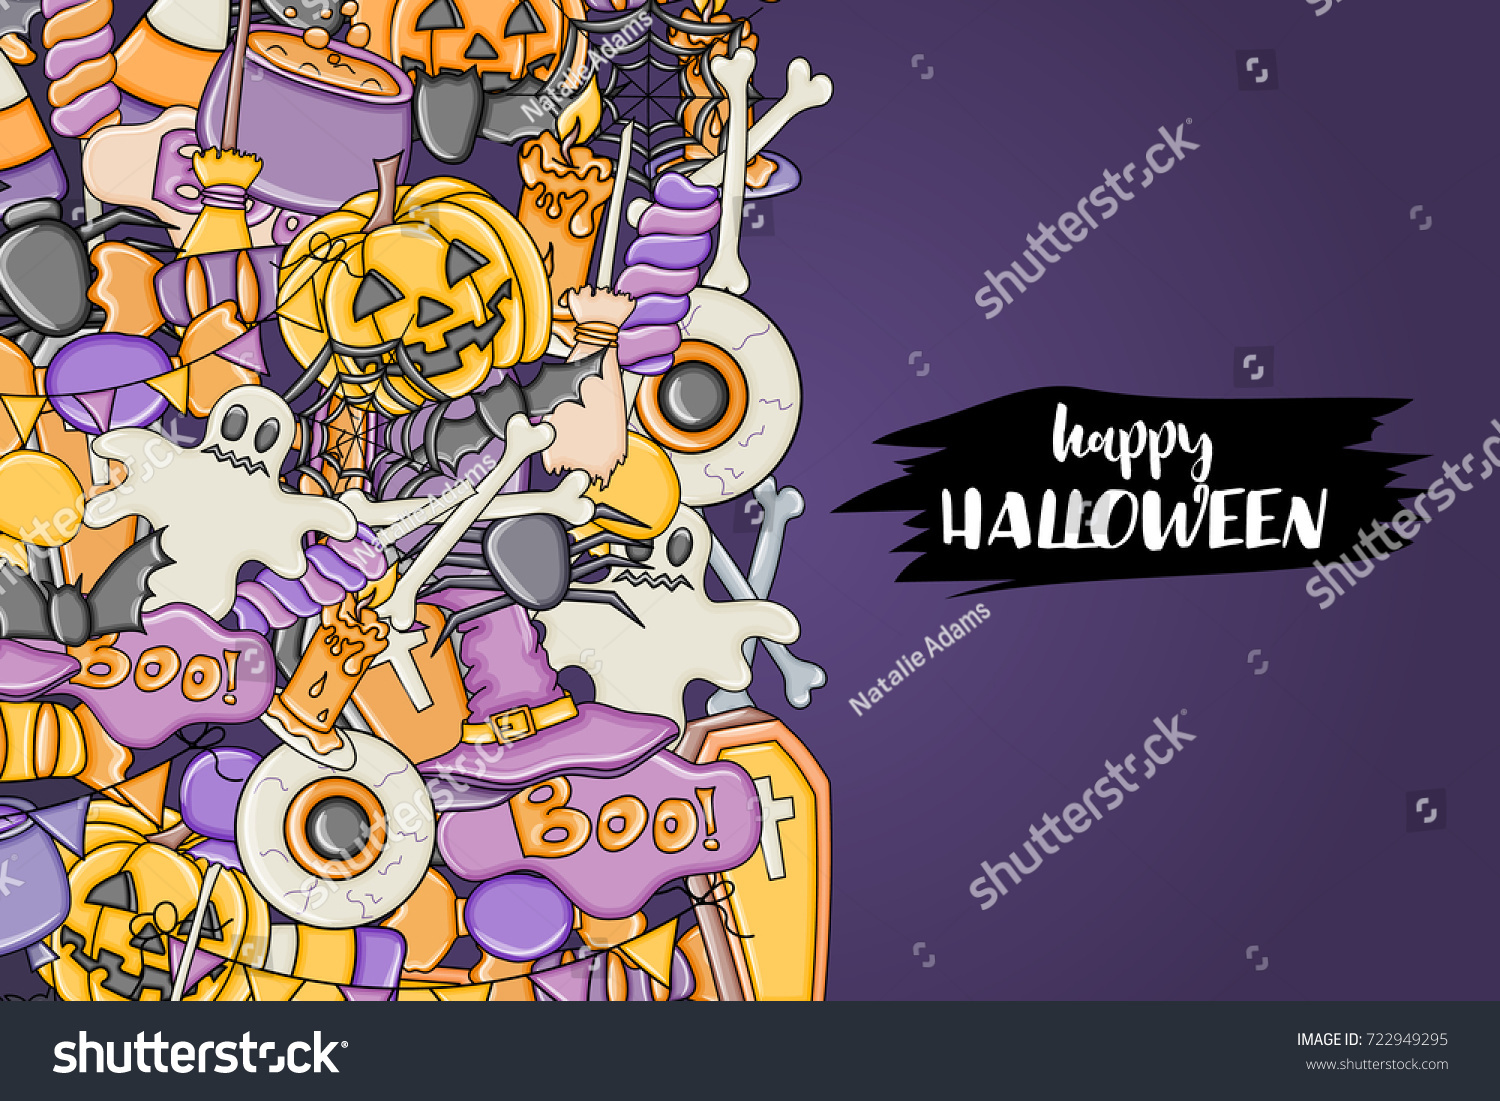 Halloween Background Holiday Design Elements Template For Flyer